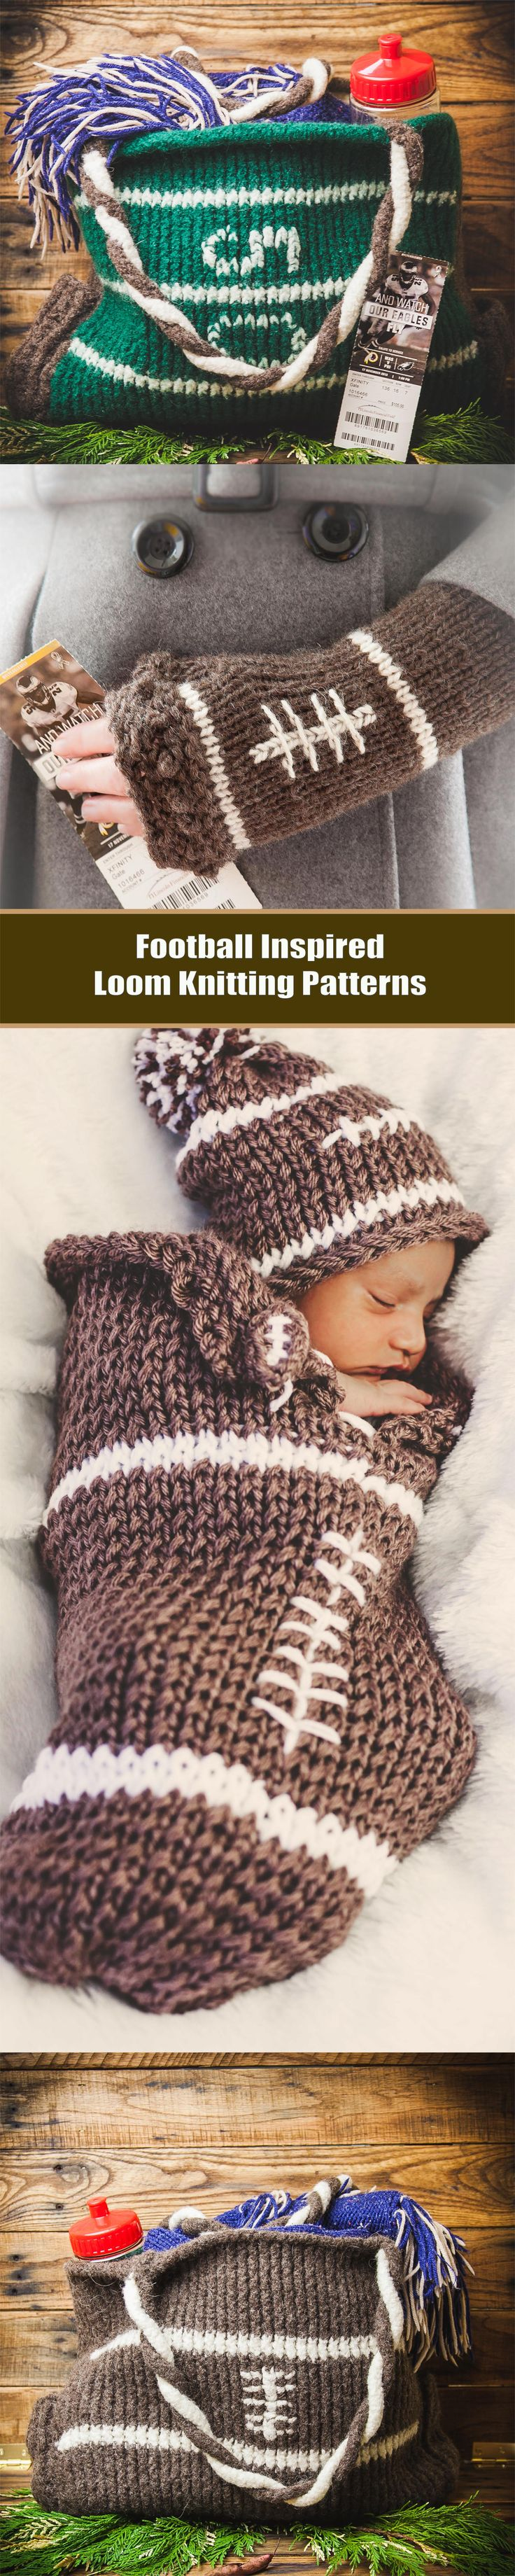 Football Inspired Loom Knitting Patterns. Loom Knit Totes, Mitts, Newborn Cocoons, Ipad/kindle Covers.